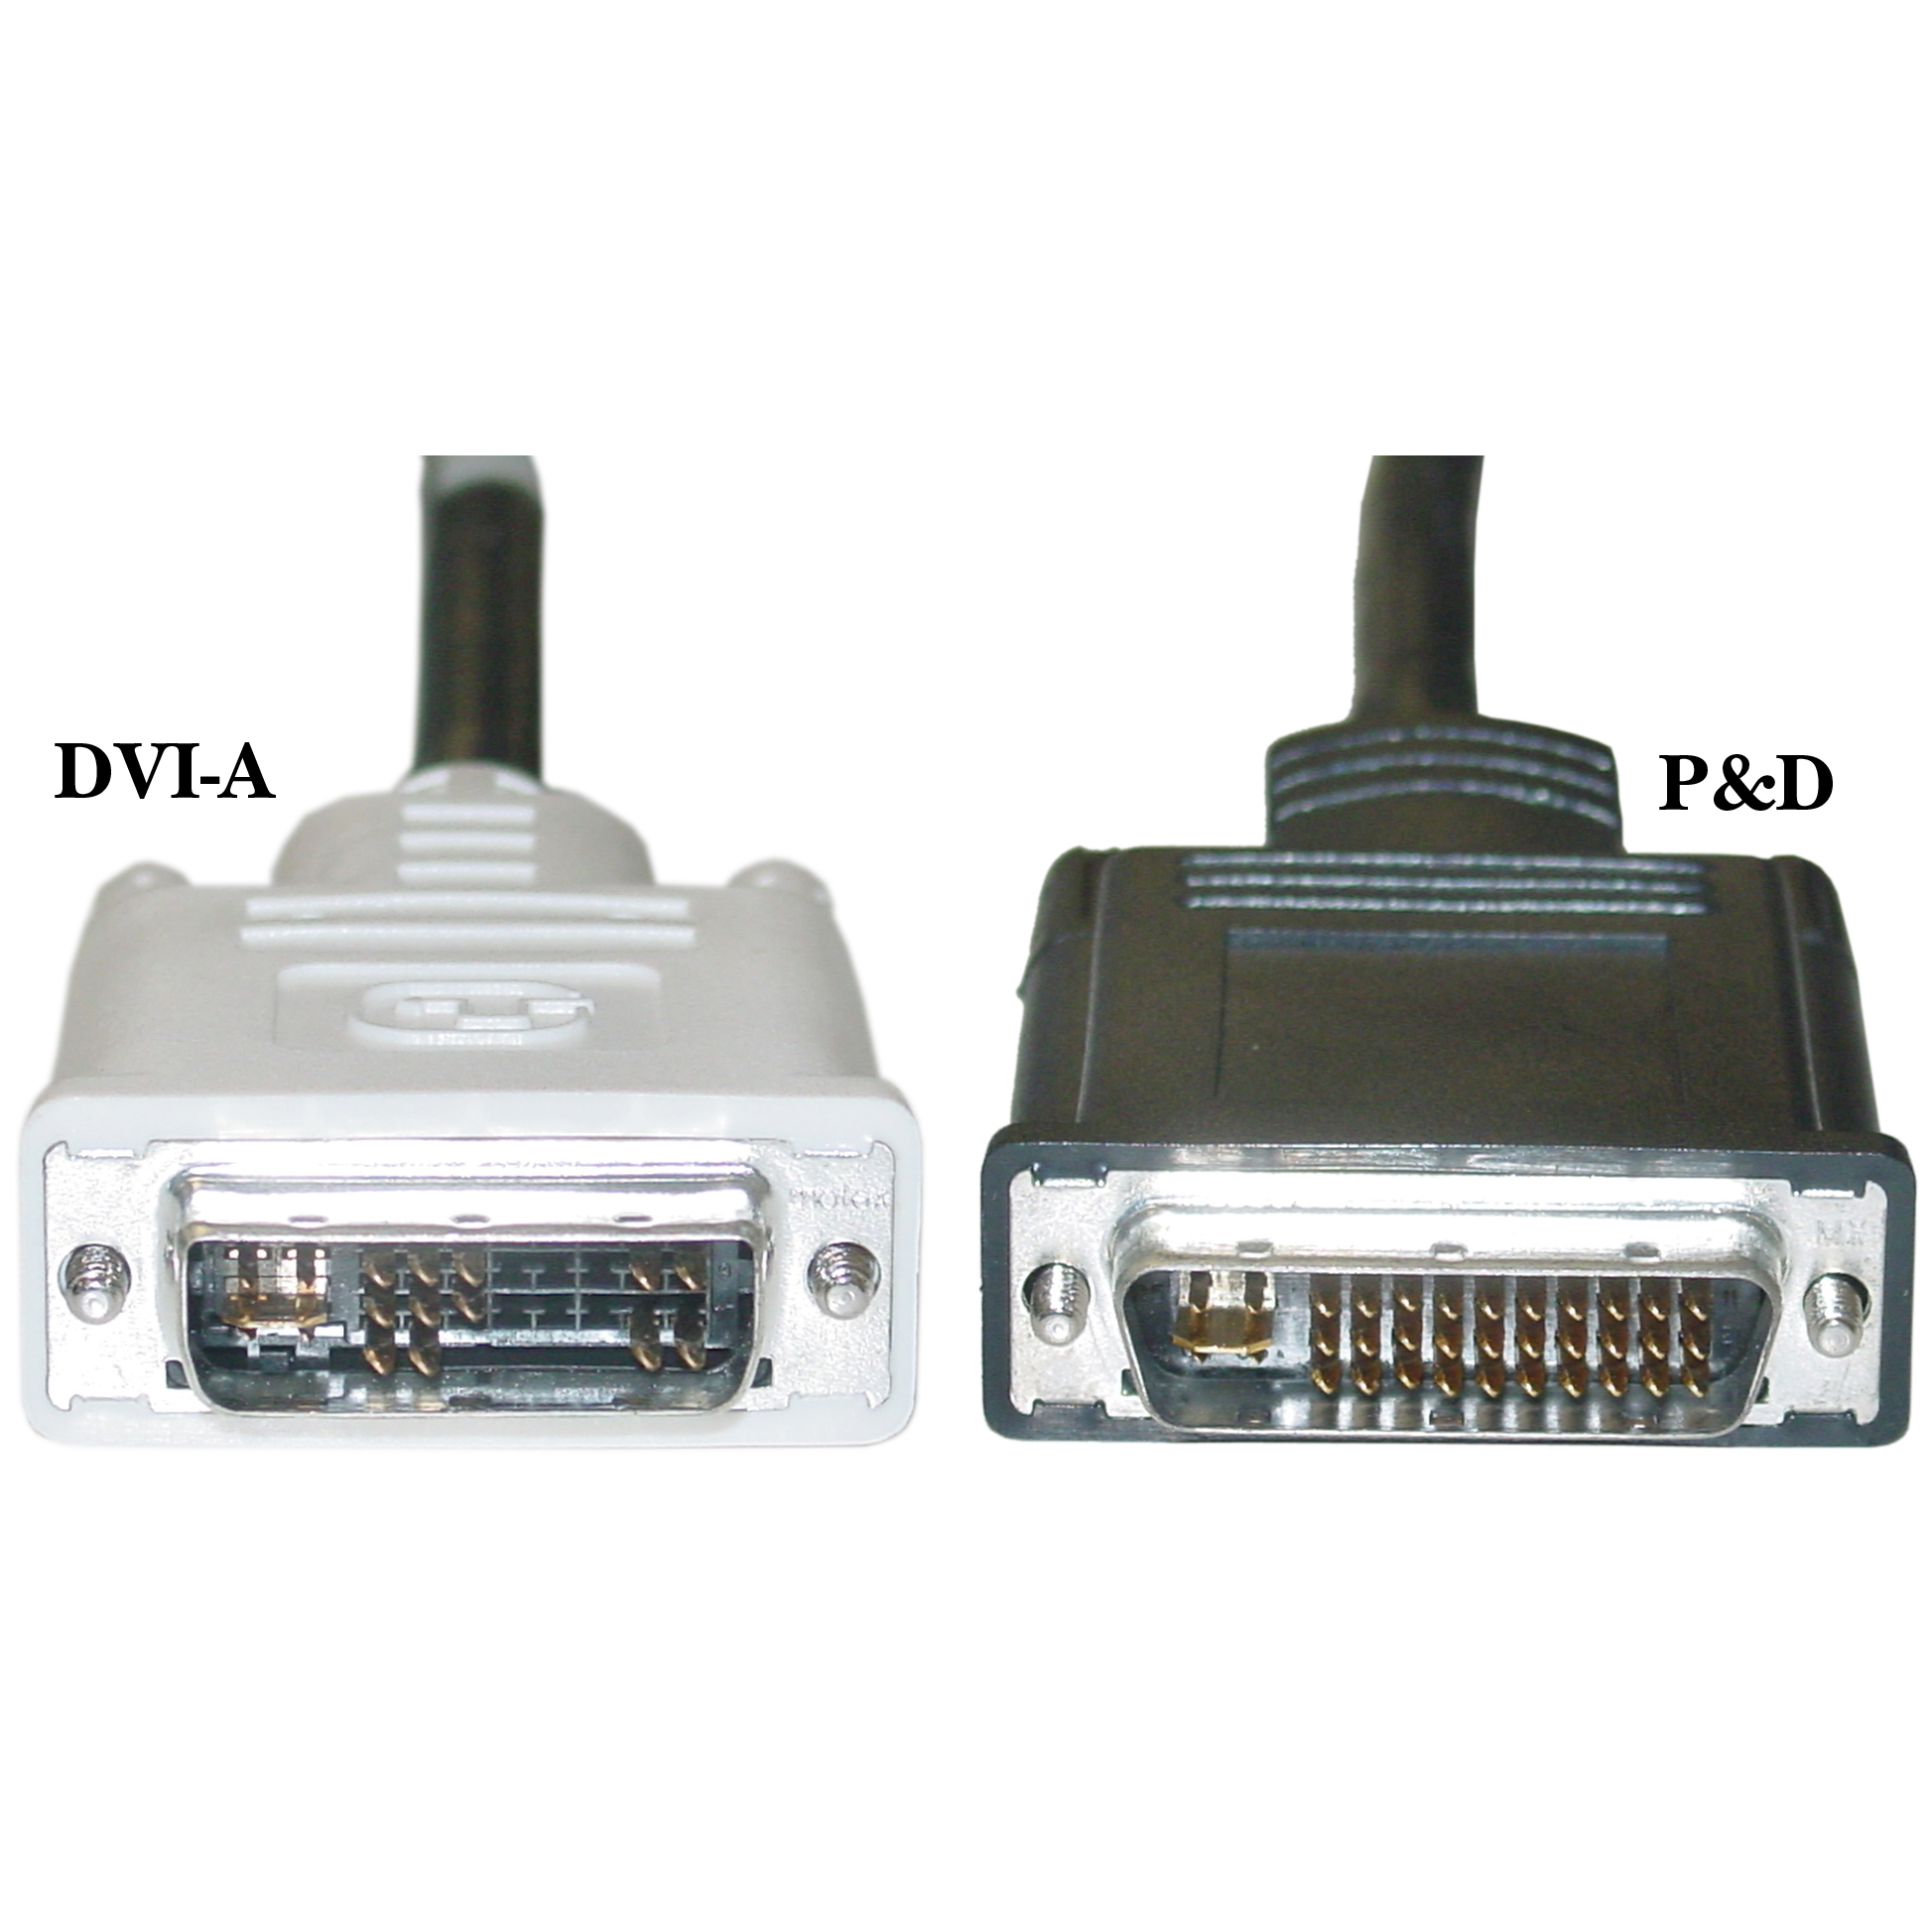 5 Meter Vesa Plug And Display To Dvi Analog Video Cable P